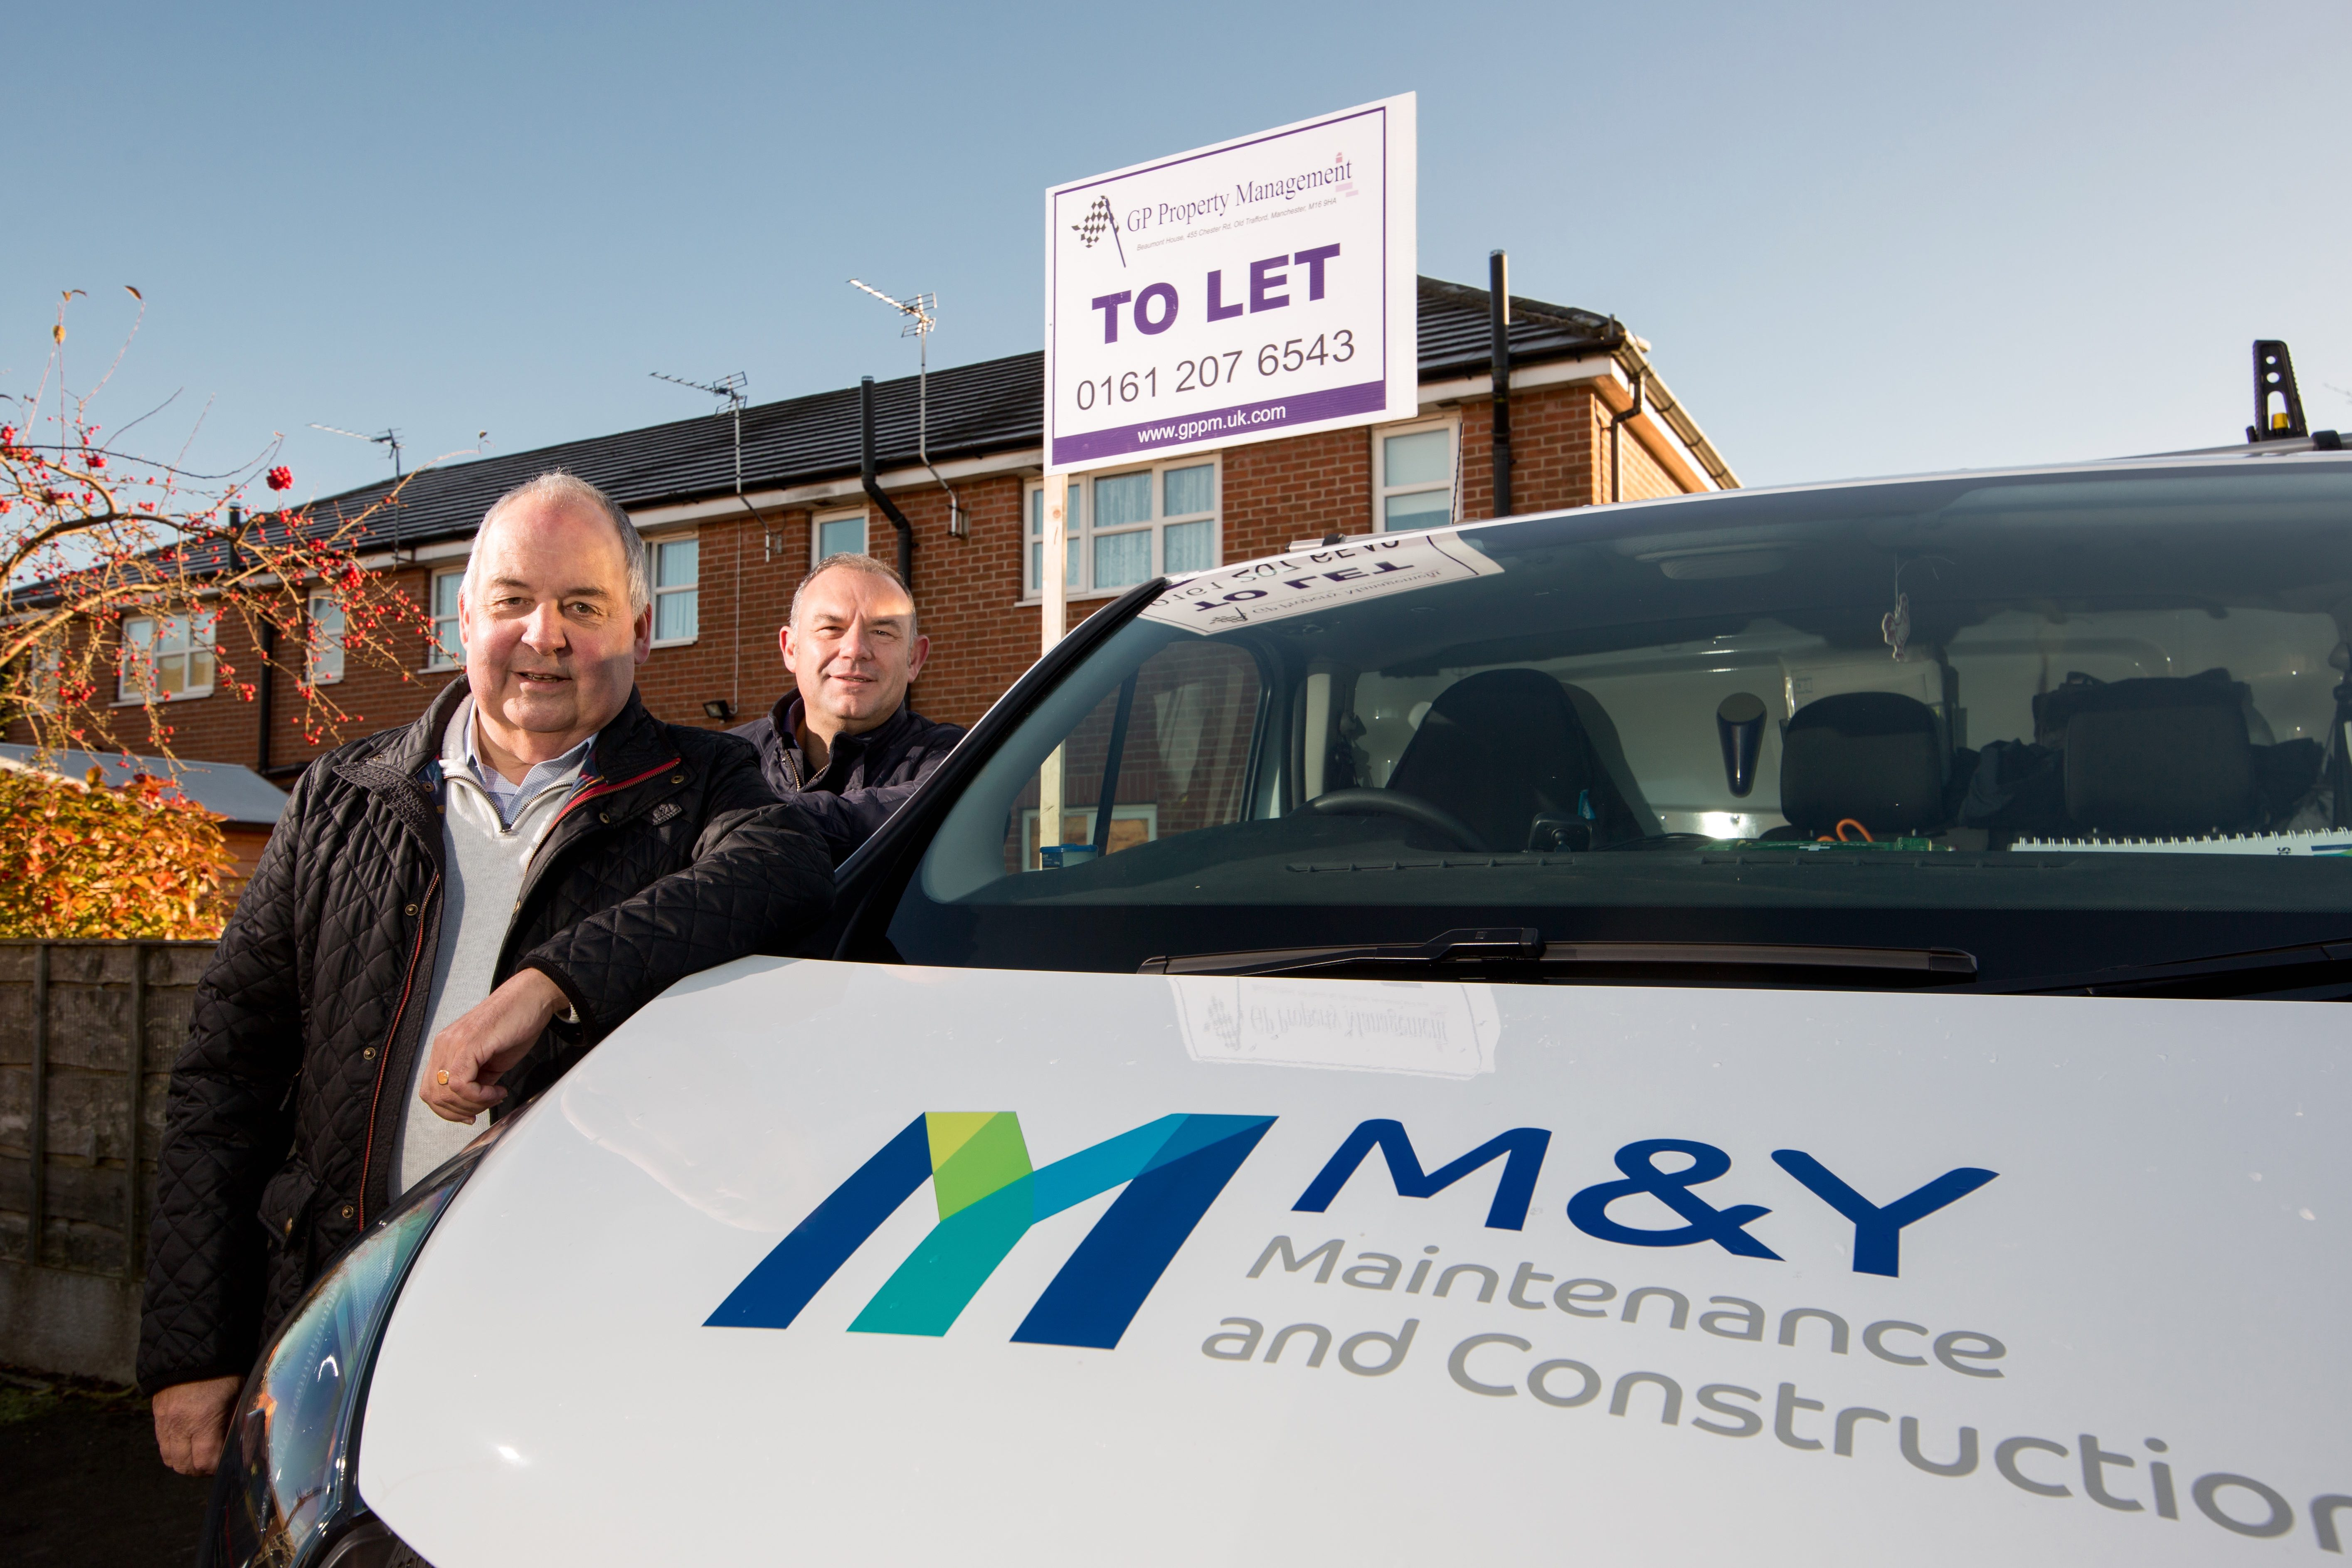 New M&Y deal offers tenants and landlords peace of mind